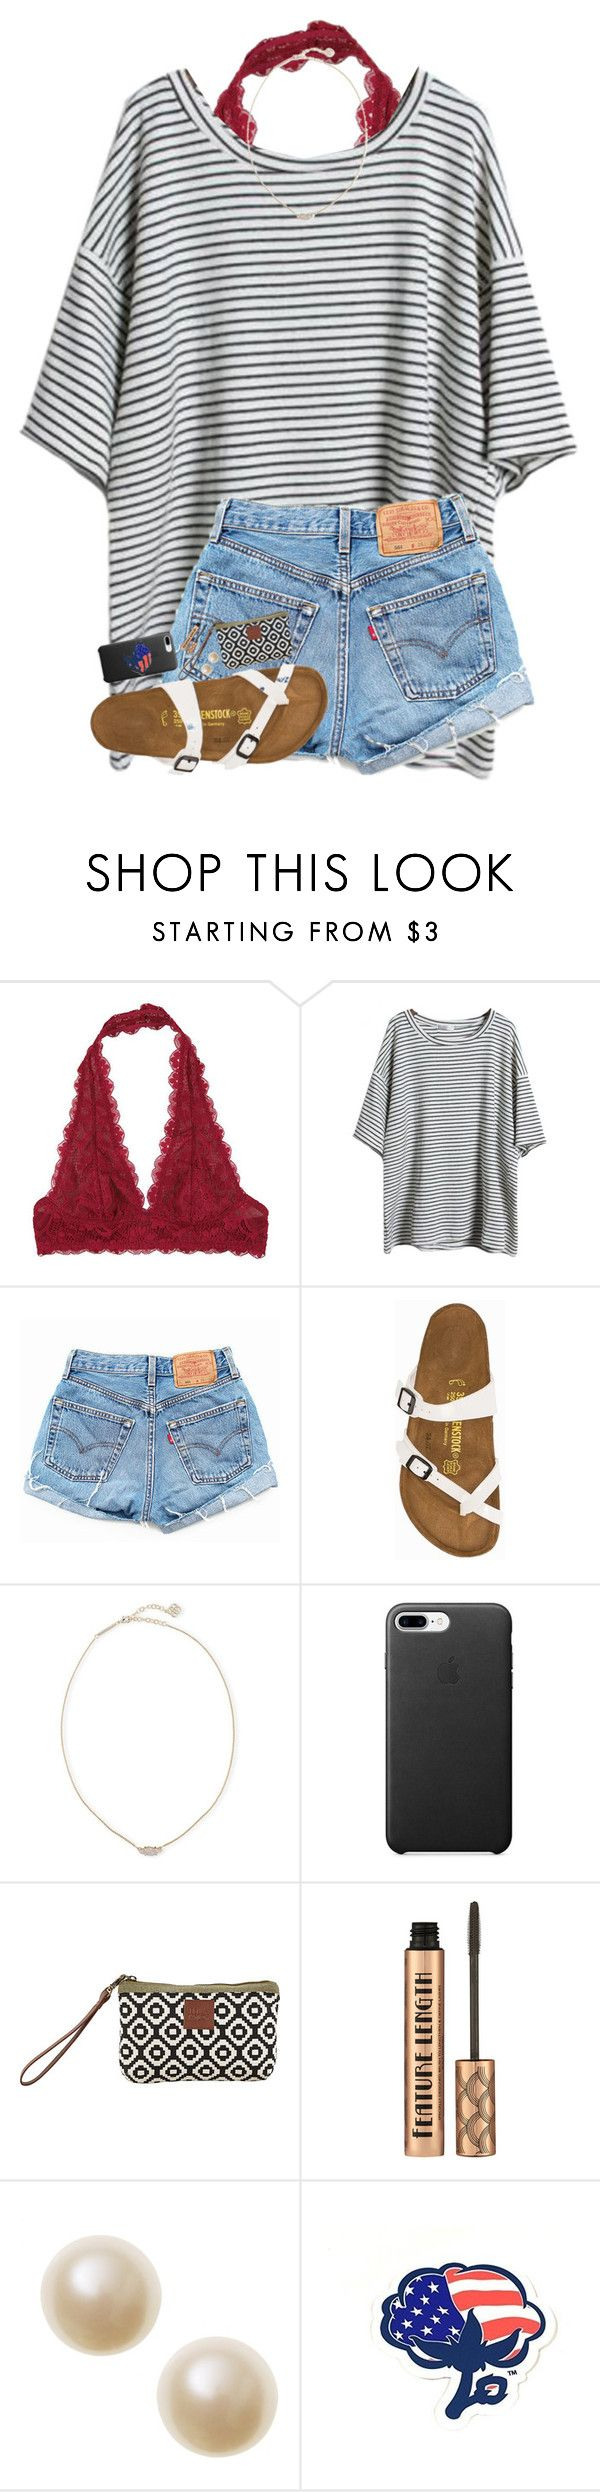 """REALLY warm today...❄️"" by hgw8503 ❤ liked on Polyvore featuring Free People, Levi's, Birkenstock, Kendra Scott and Southern Proper"